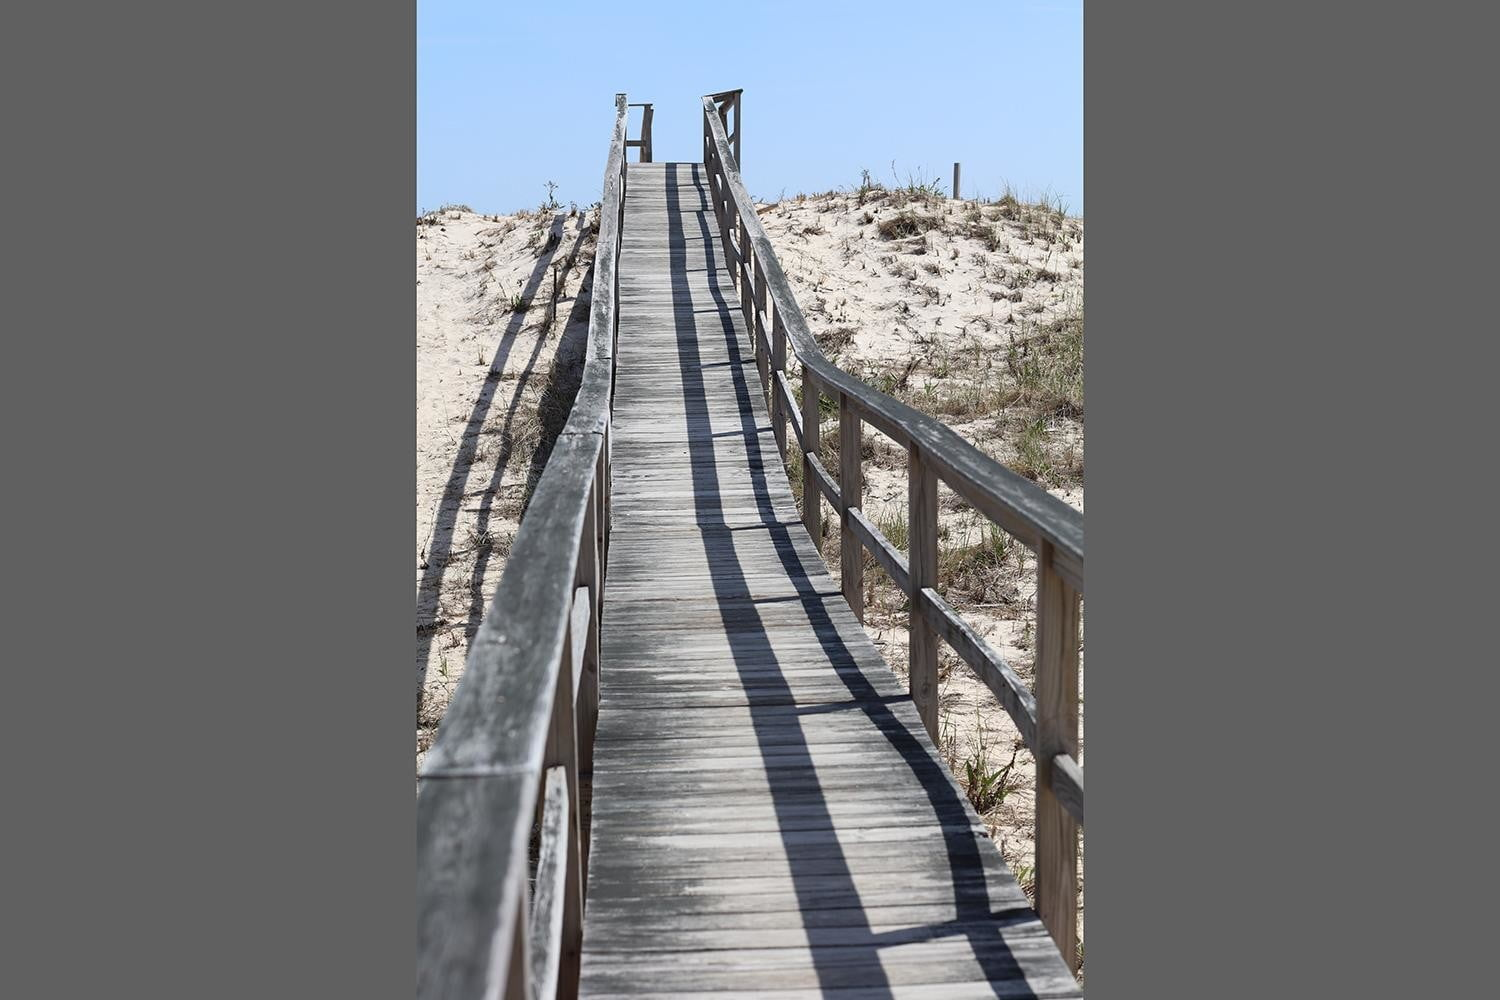 canon eos 5ds hands on sample beach walkway